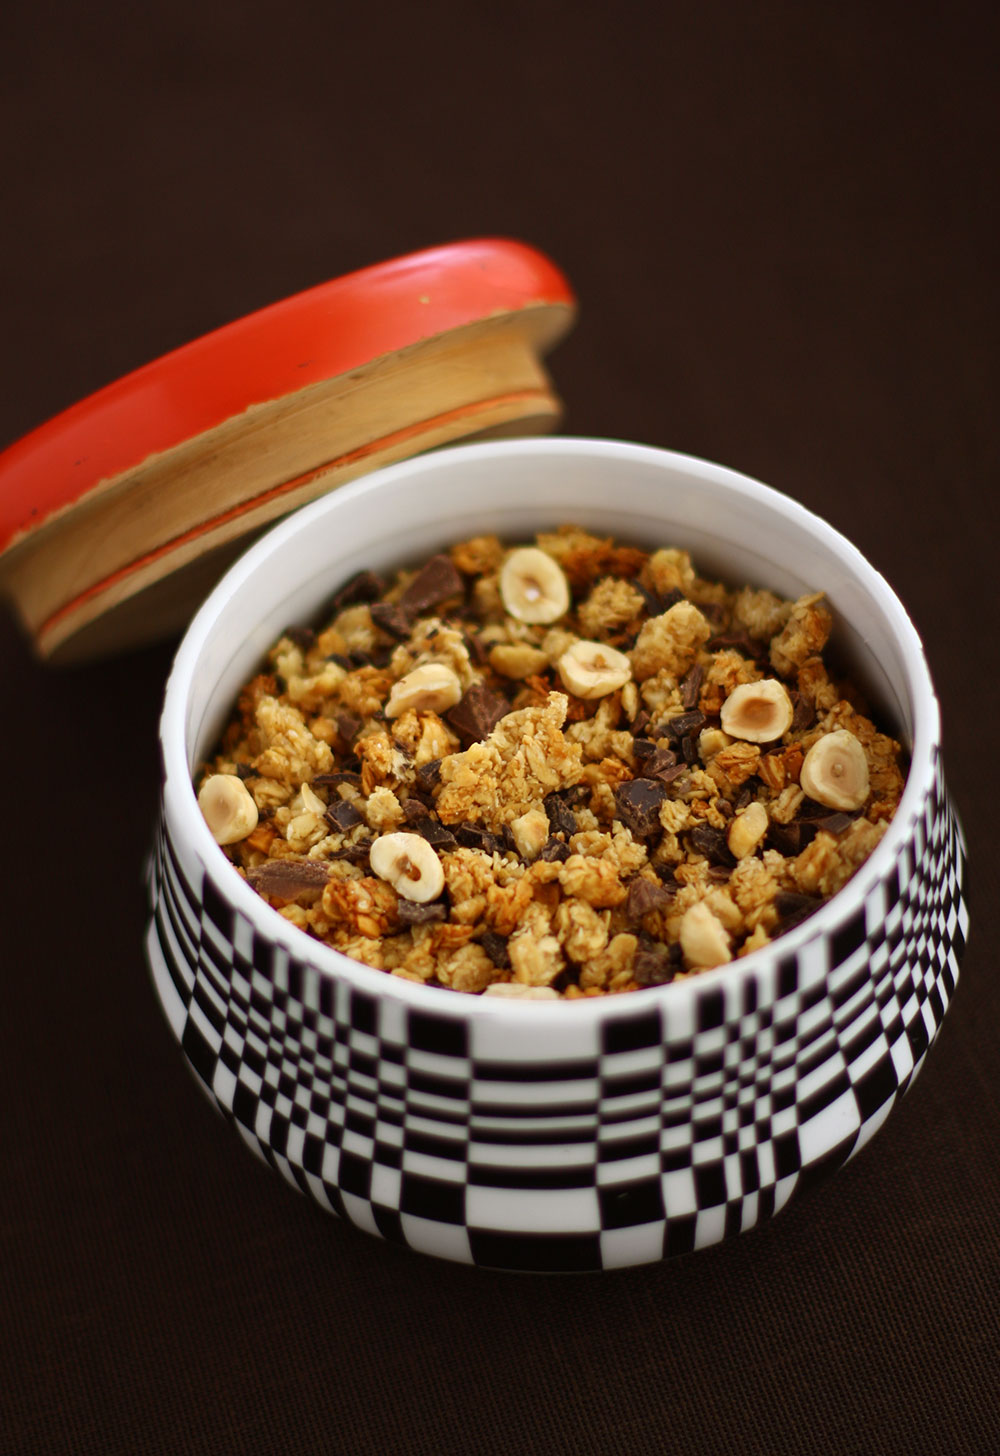 Chocolate and Hazelnut Granola 2